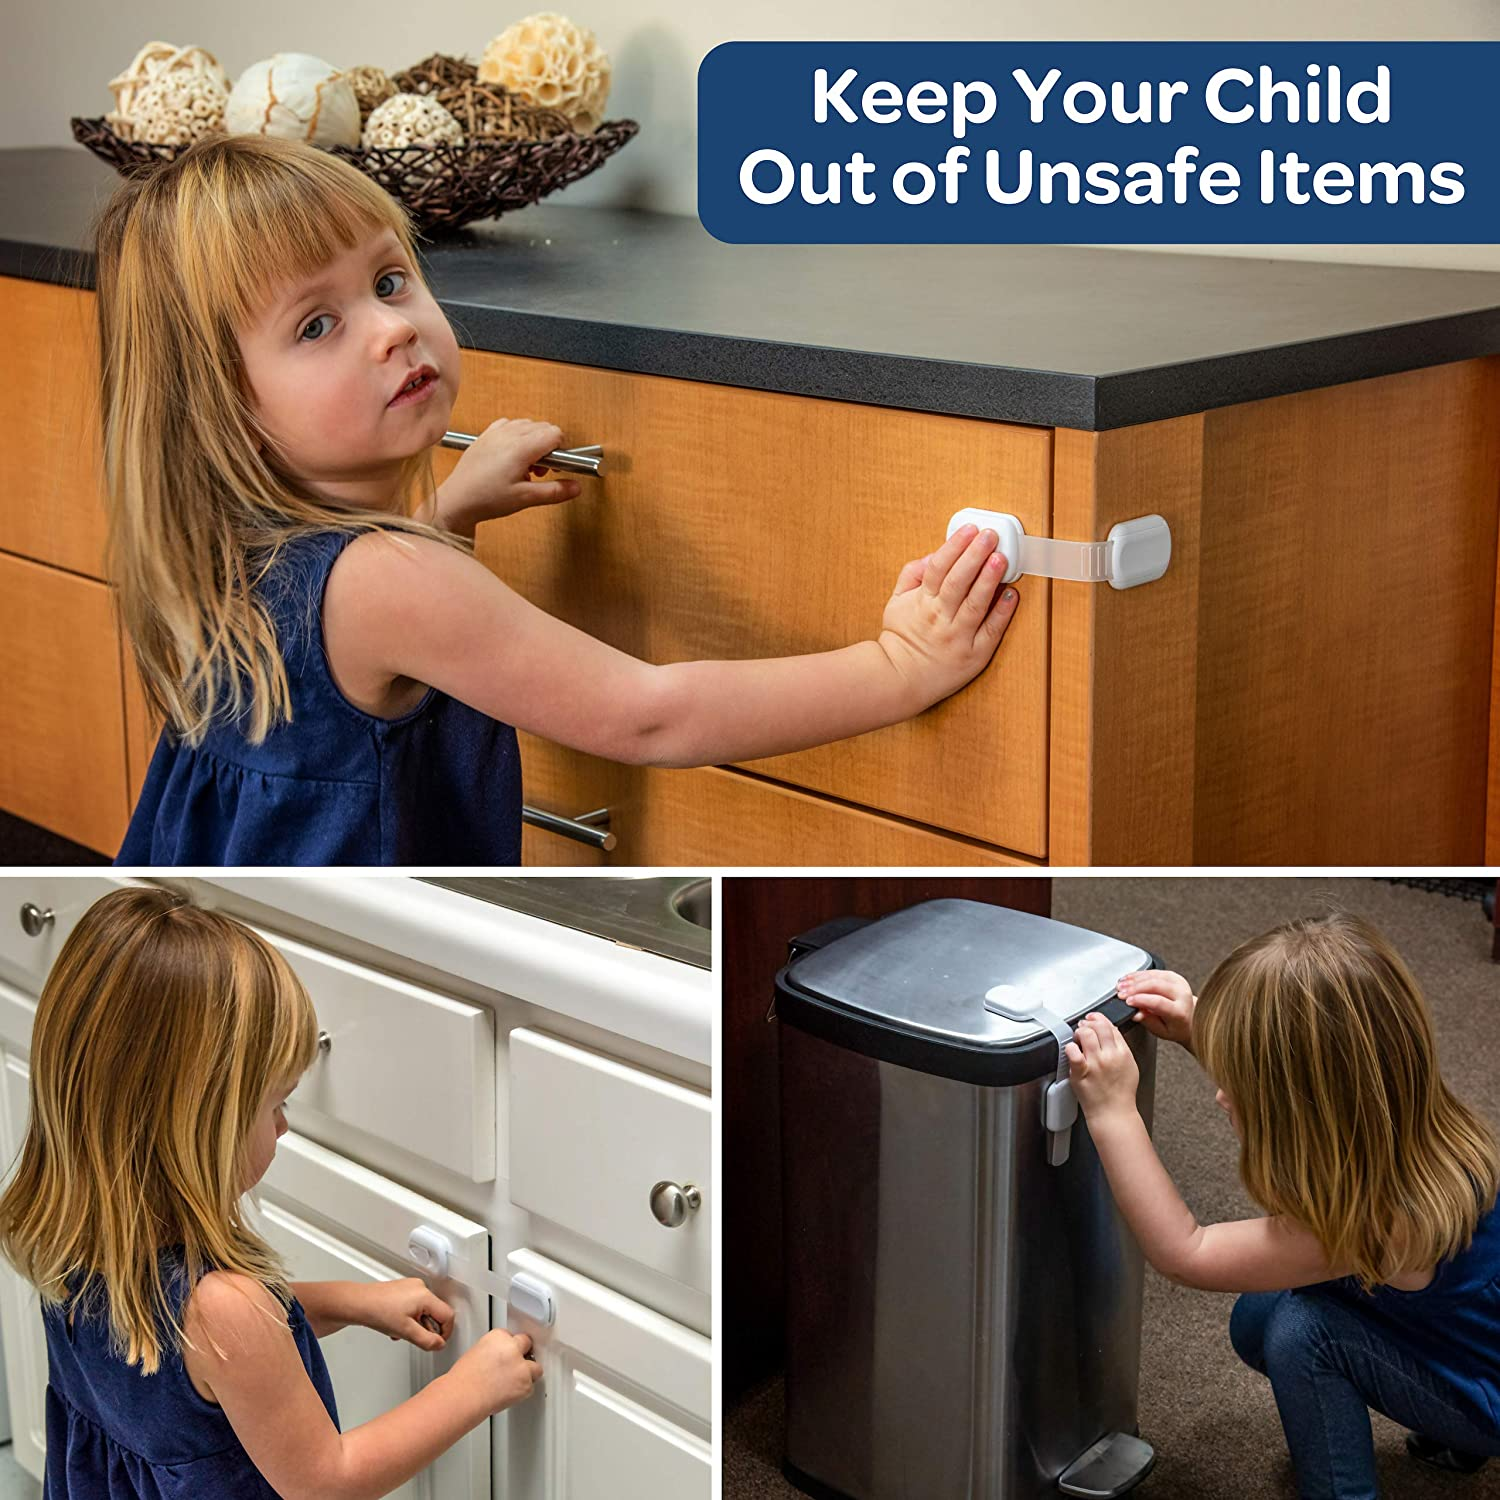 Cupboard Drawer Quick No Tools Installation! Appliance /& More - Baby Proof Cabinet Wittle Child Safety Cabinet Locks Simple to Use 8 pk, White, Clear Straps, 4 Bonus 3M Adhesives